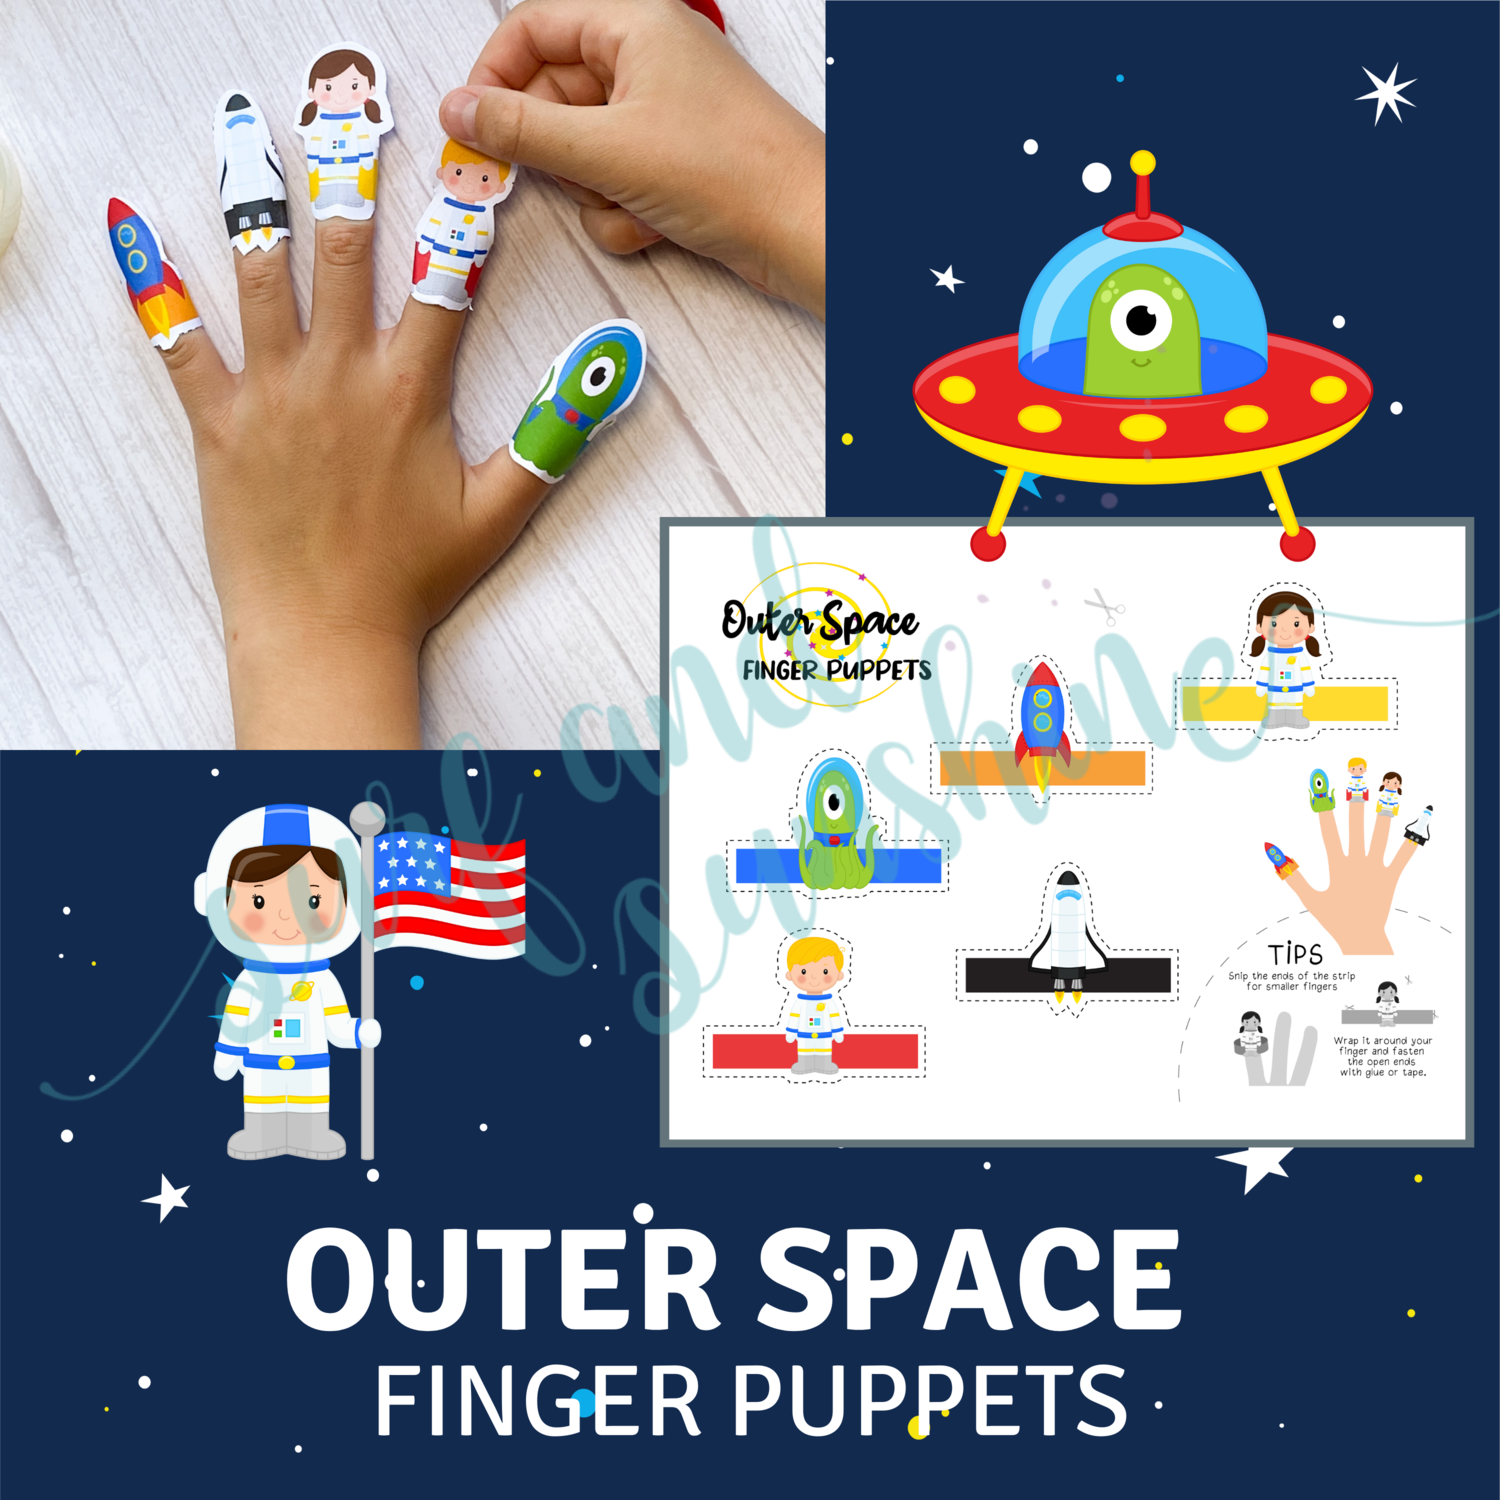 Outer Space Finger Puppets for Corinne